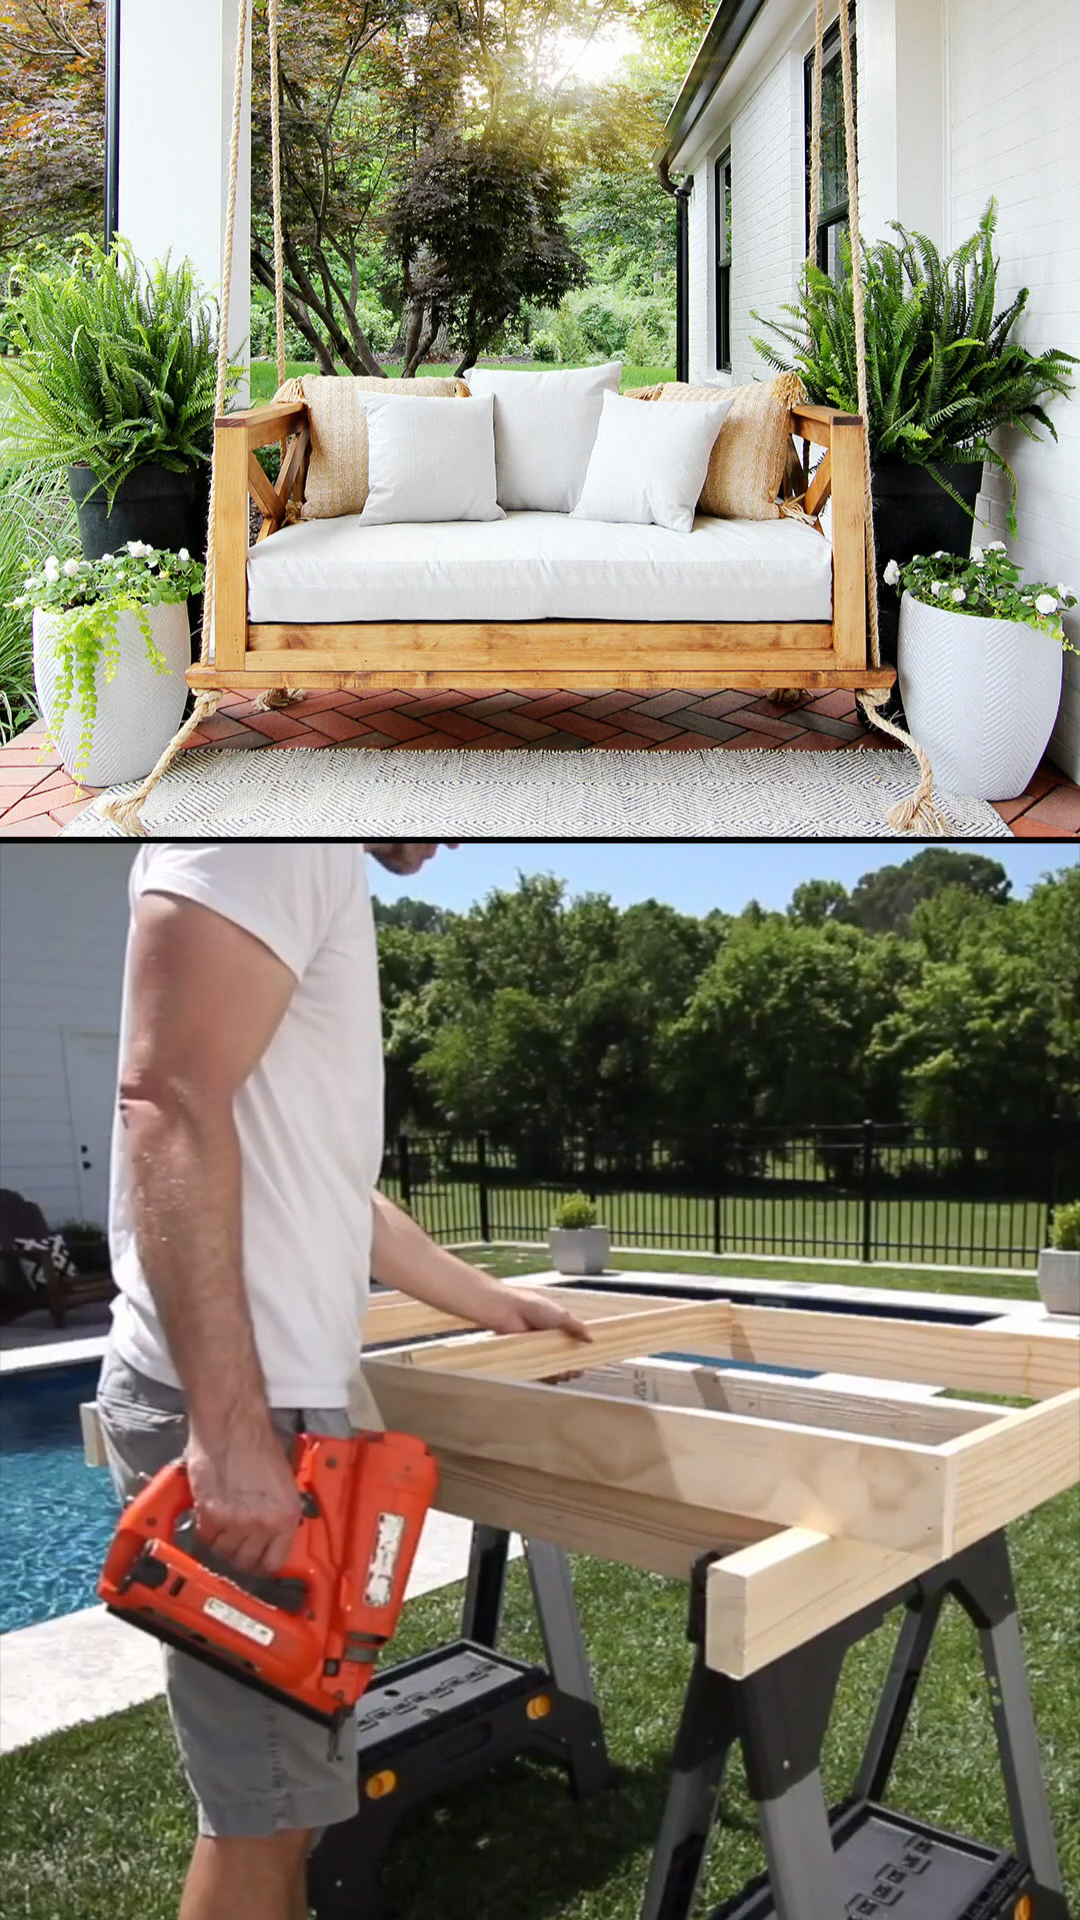 Pin on Outdoor Remodeling